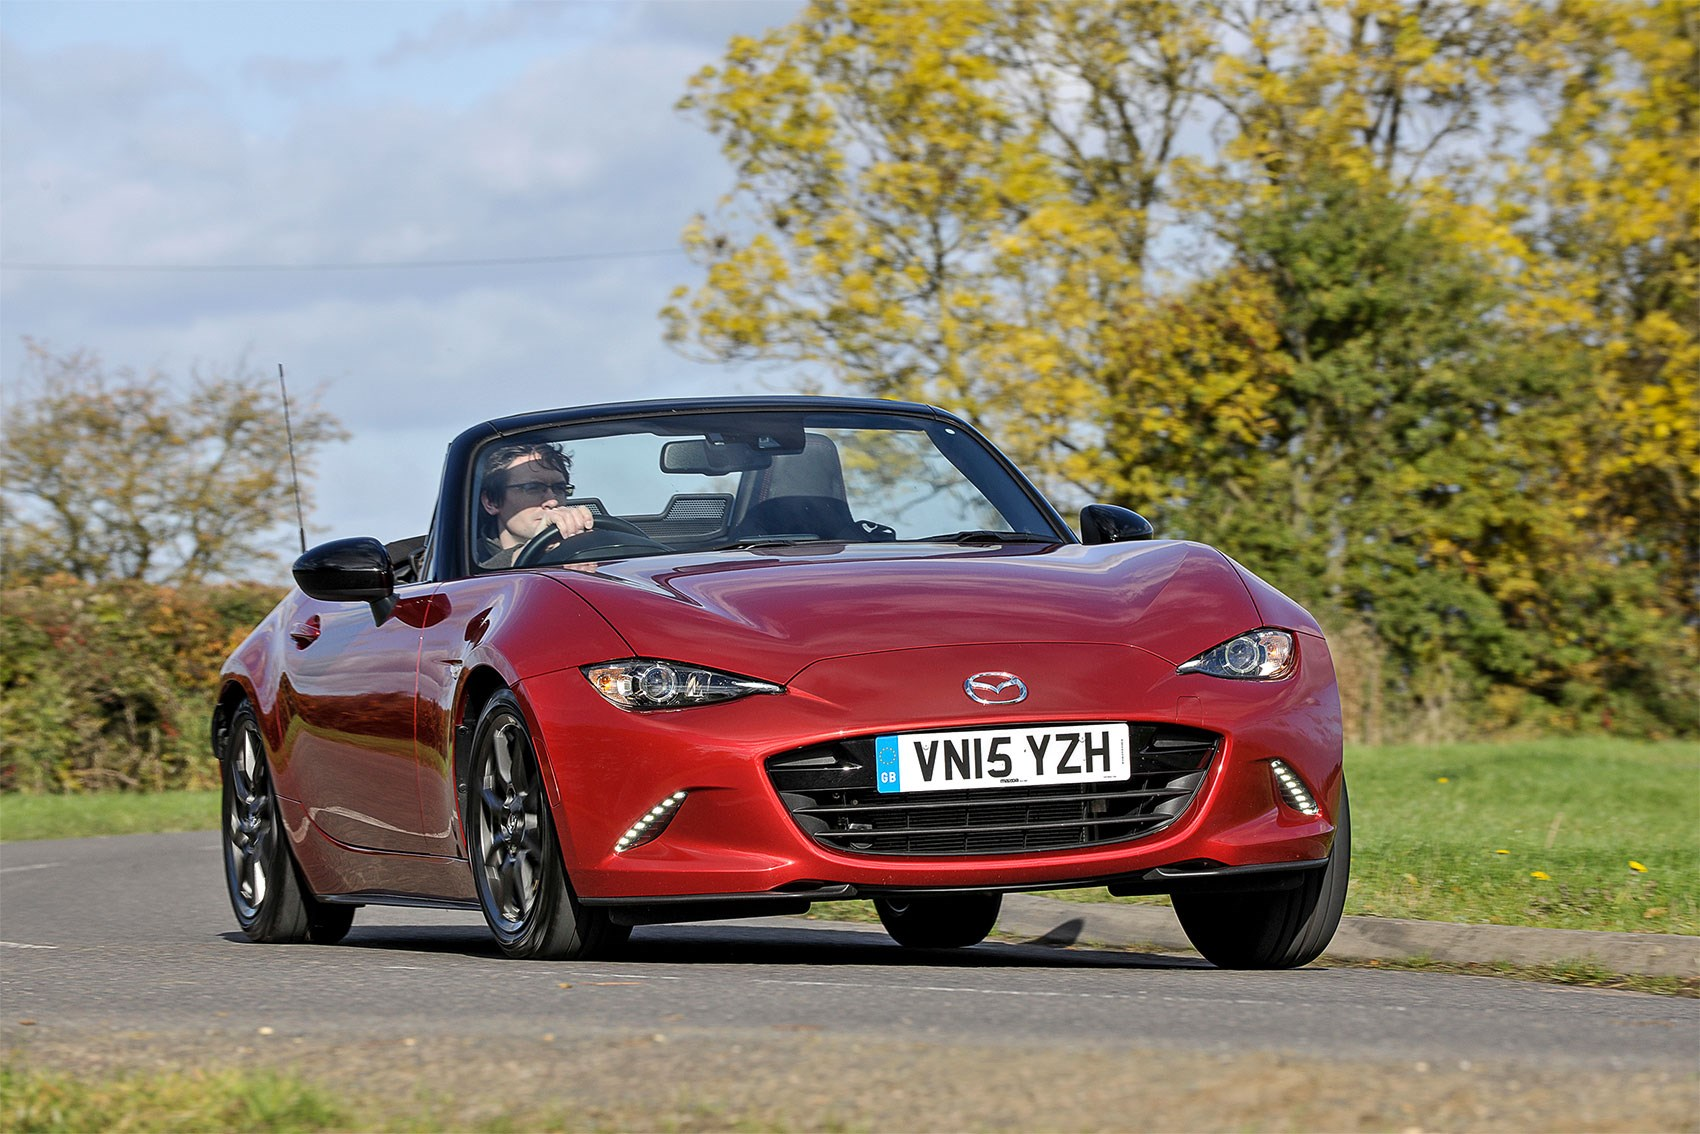 Our Mazda MX-5 doing what it does best